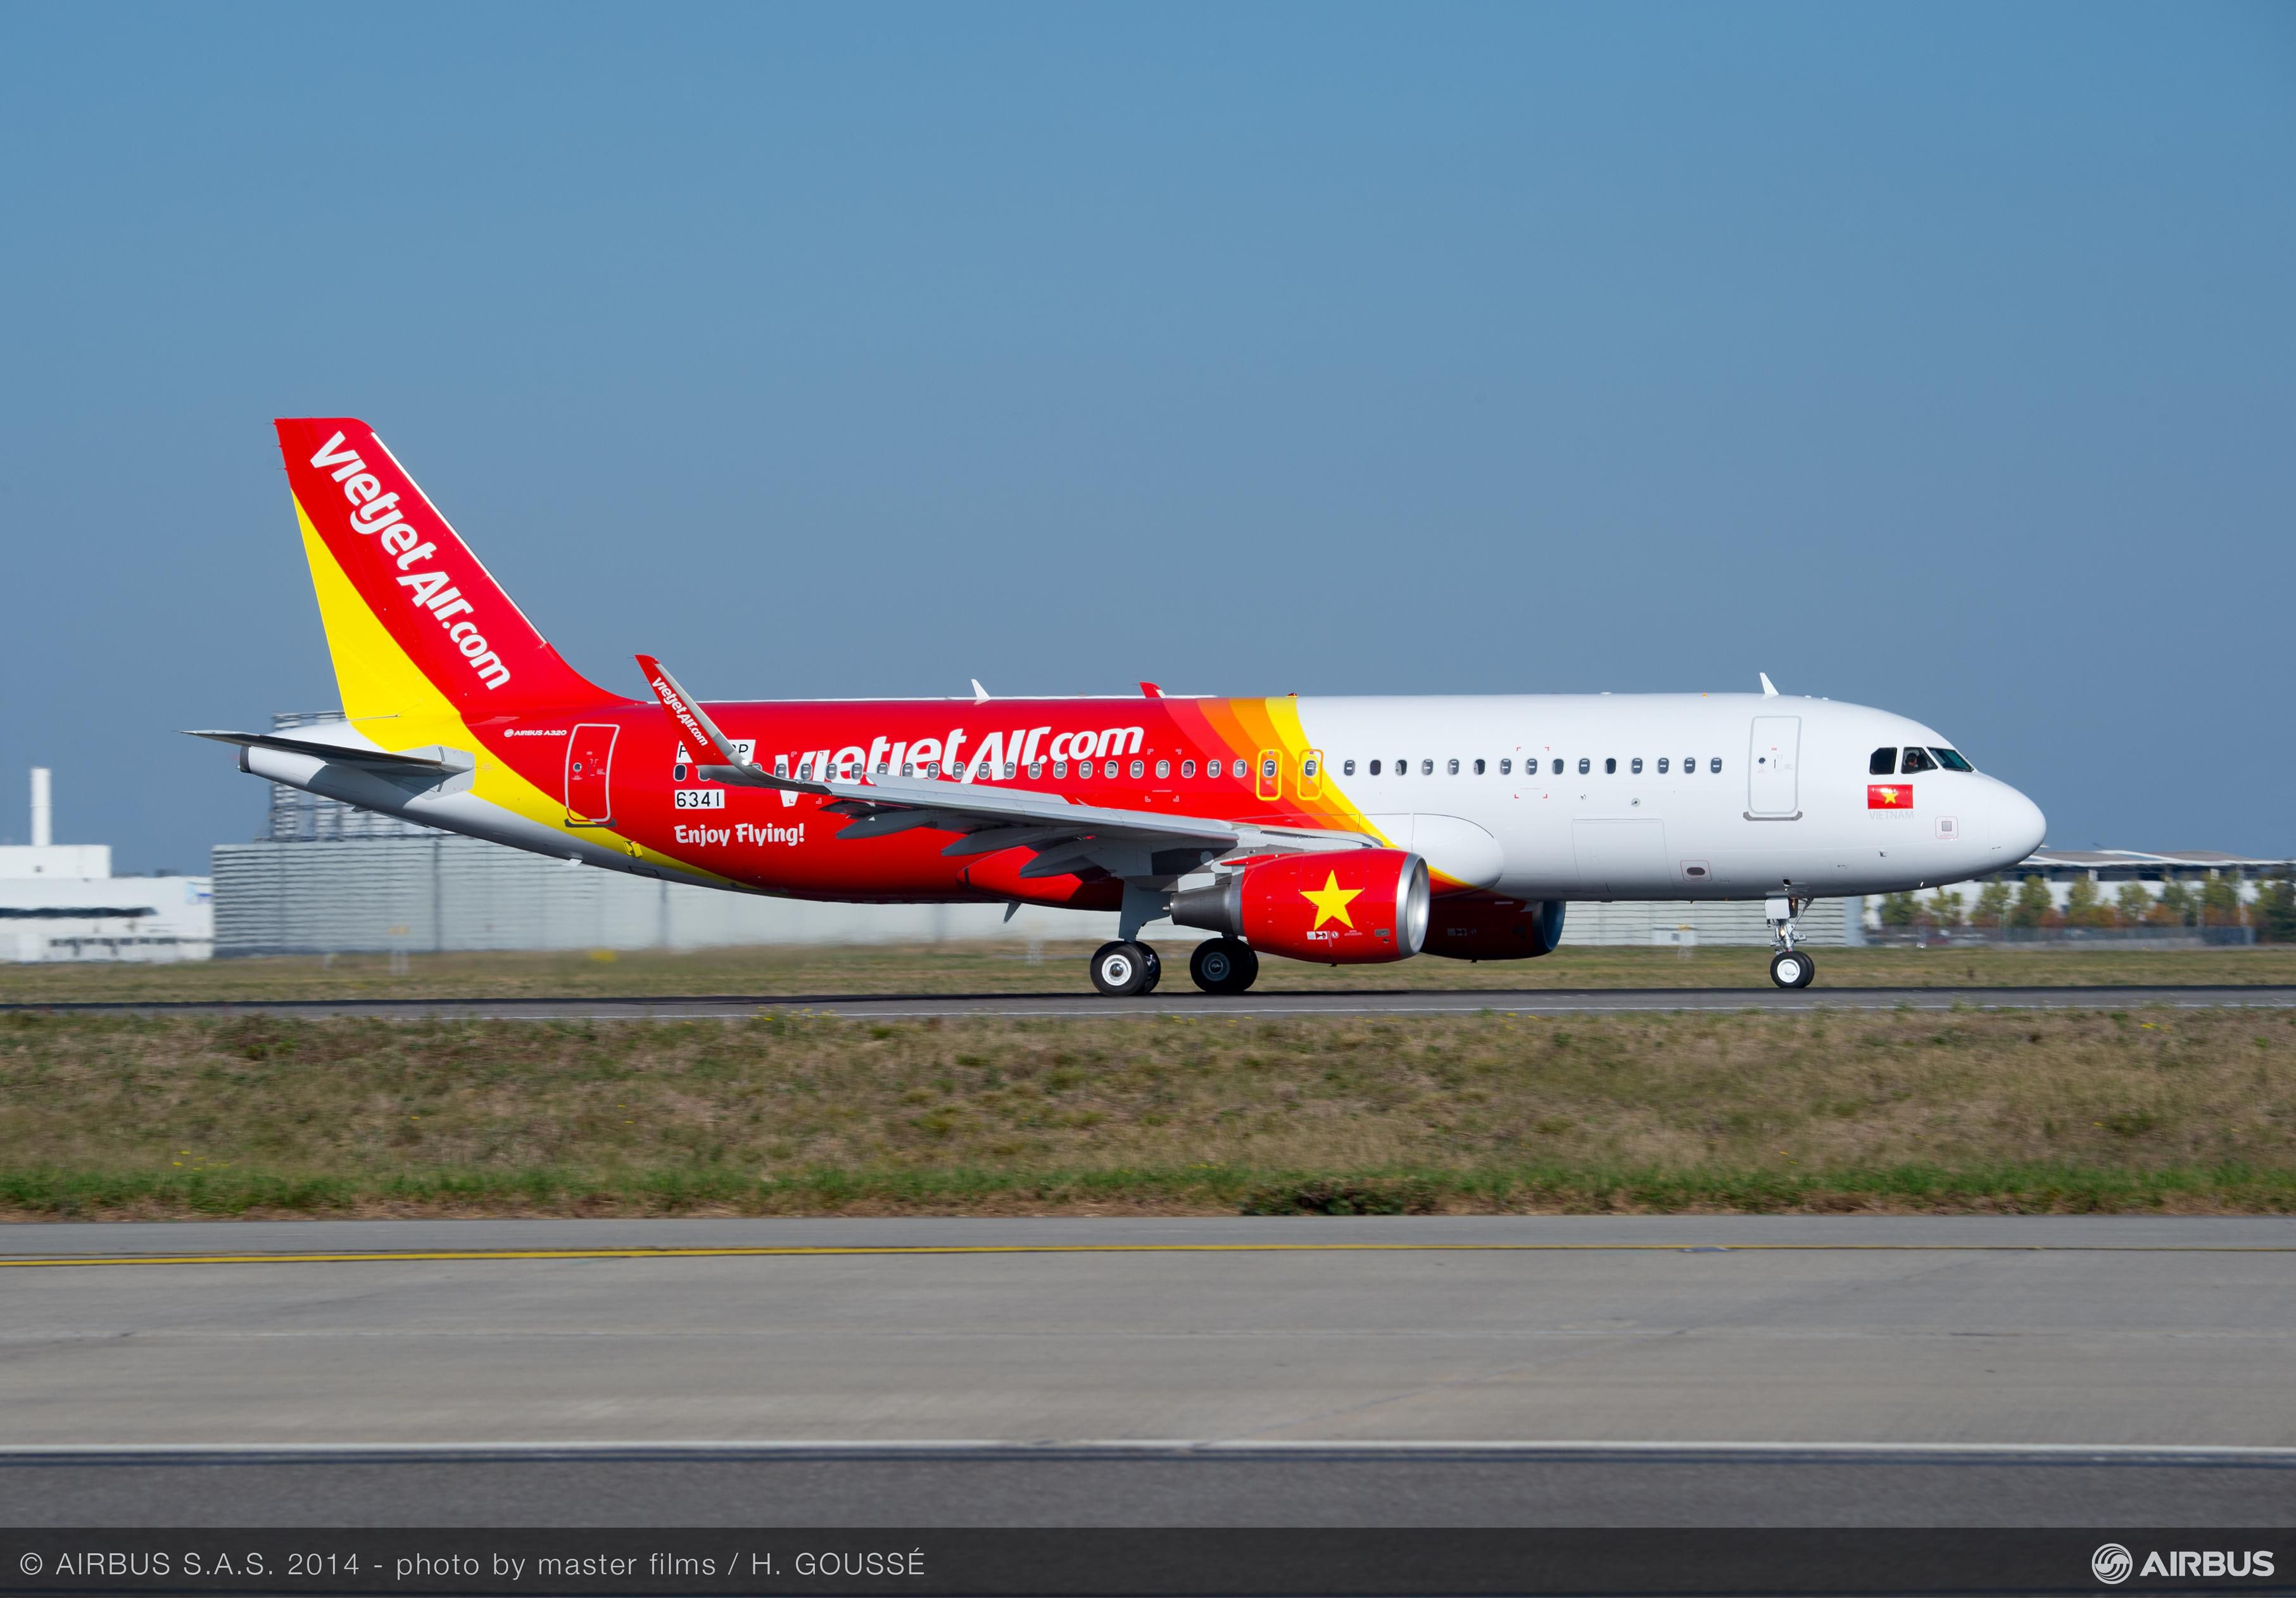 vietjetair press release Read the full press release  vietnam's vietjetair selected cfm international's cfm56-5b engine to power 21 firm airbus a320ceo family aircraft.